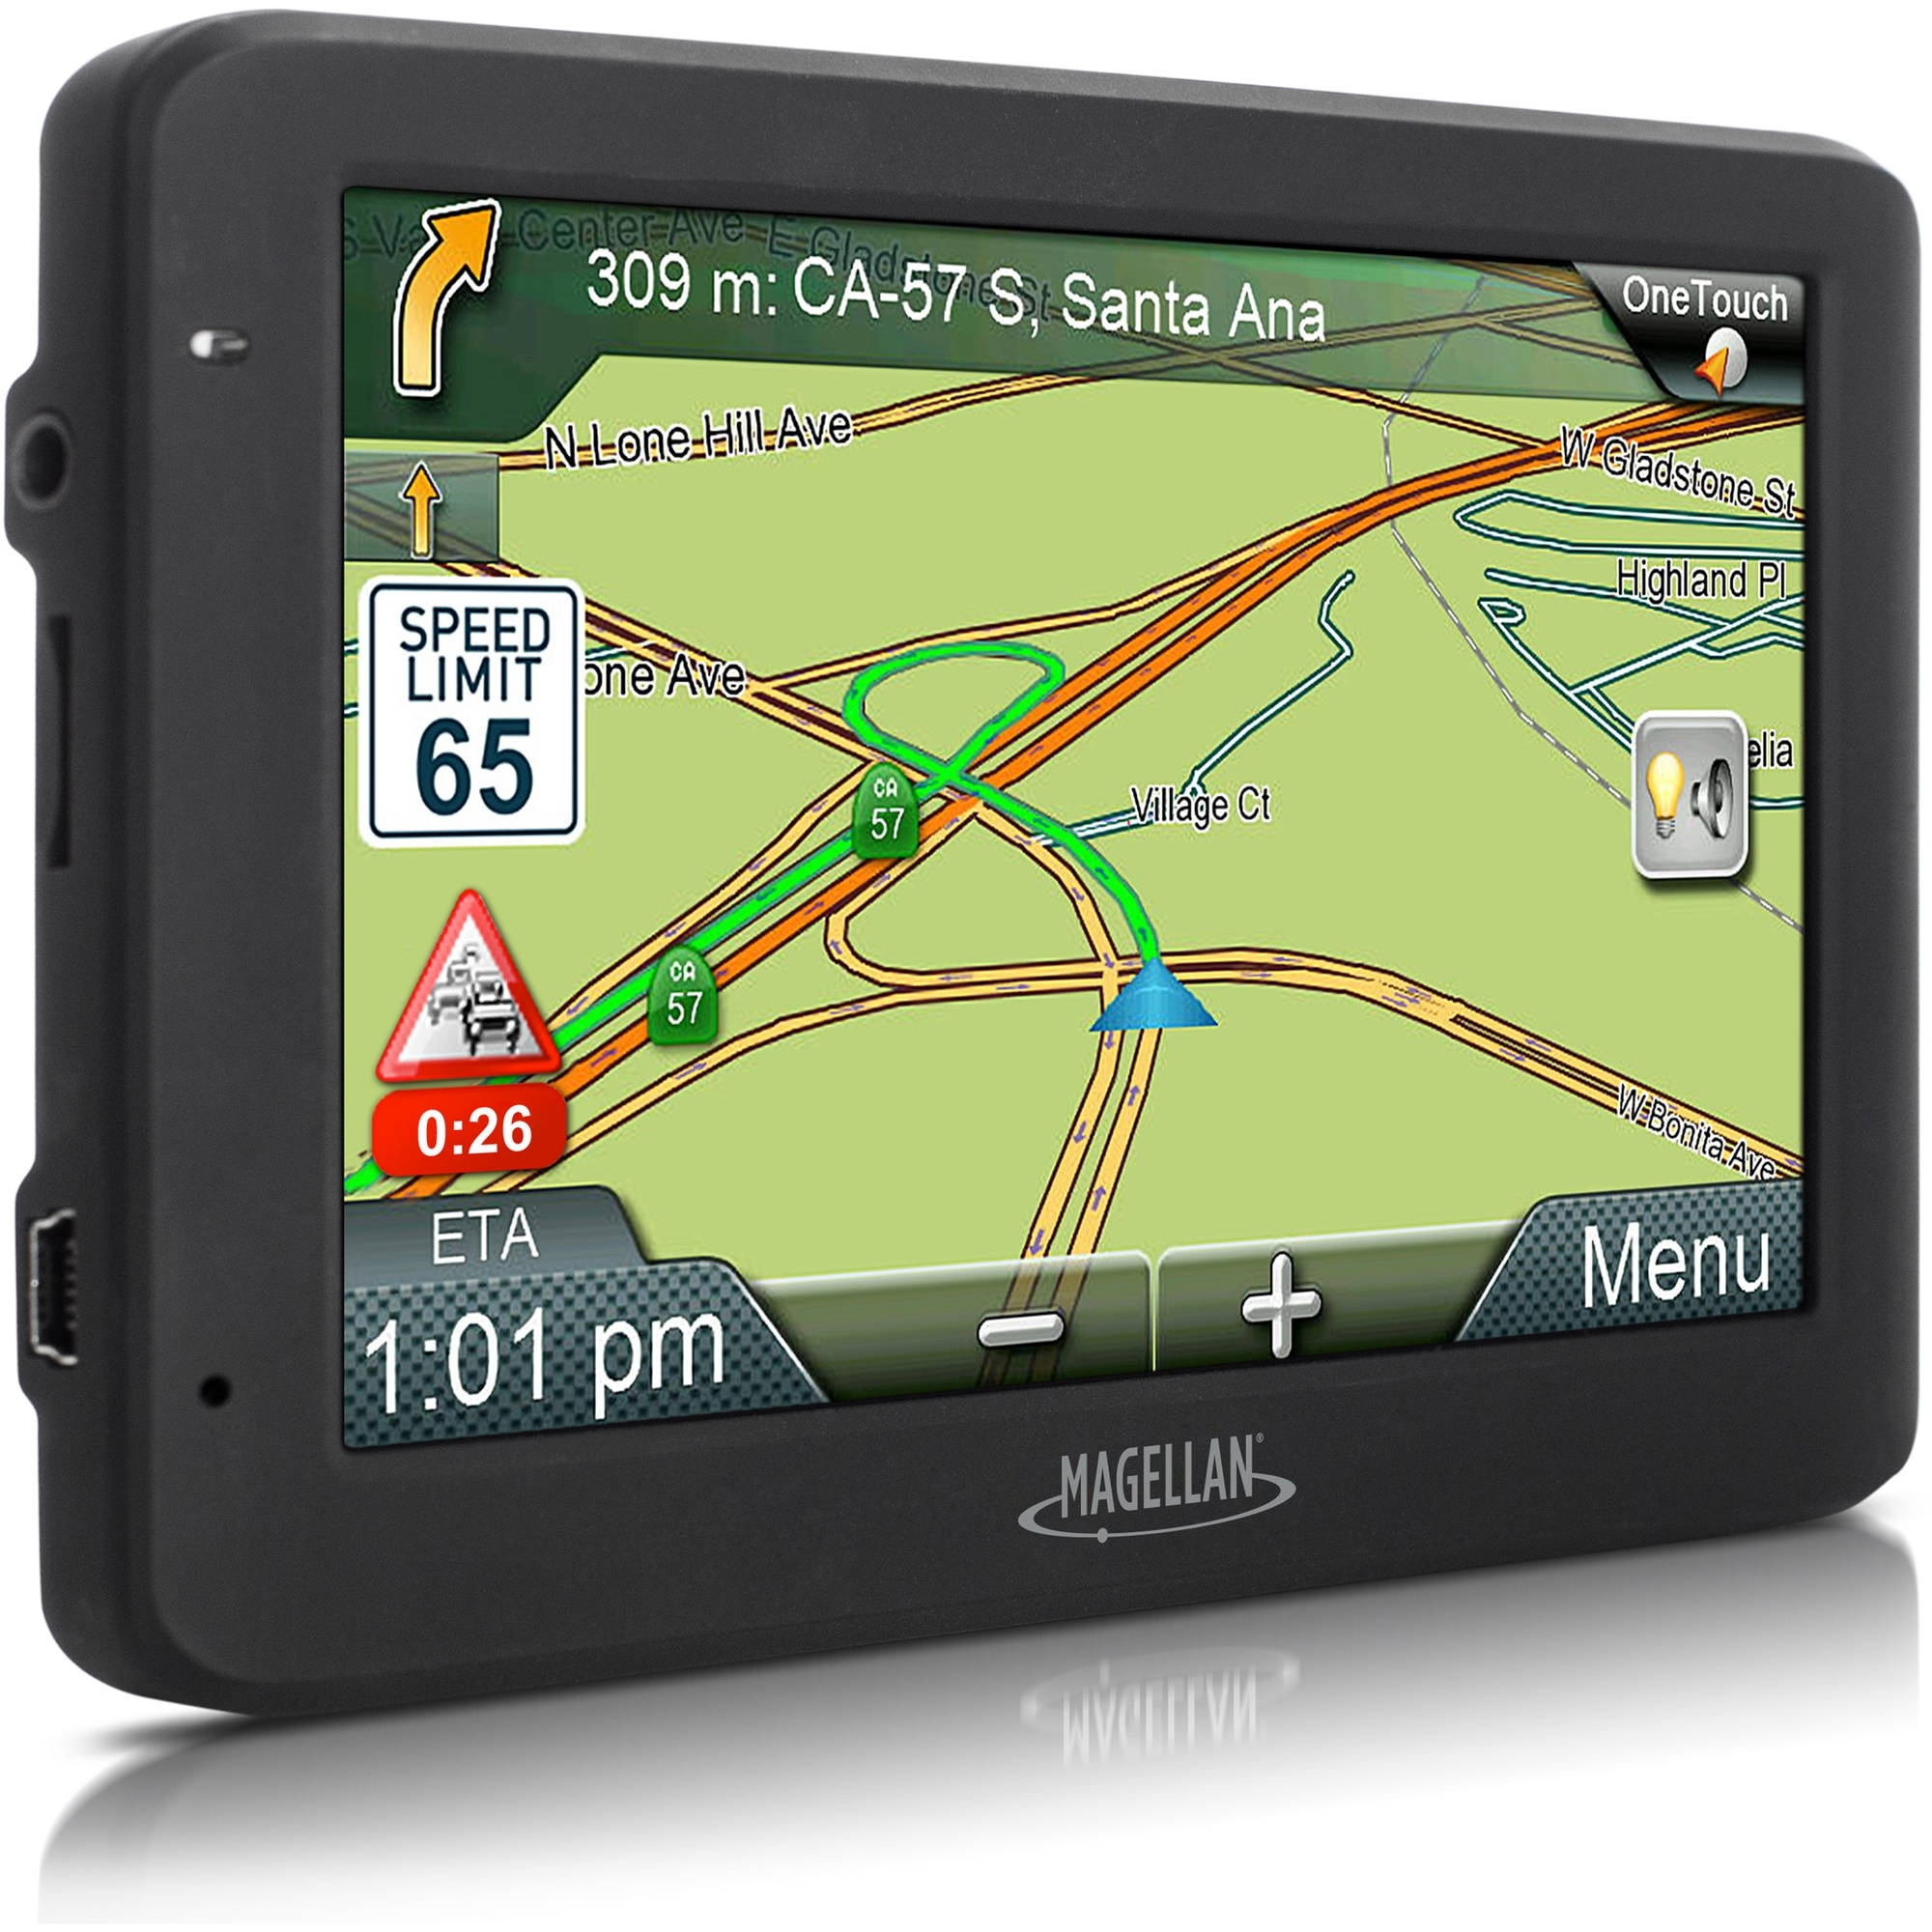 "Magellan RoadMate 5635T-LM 5.0"" Touchscreen Portable GPS System (Certified Refurbished)"